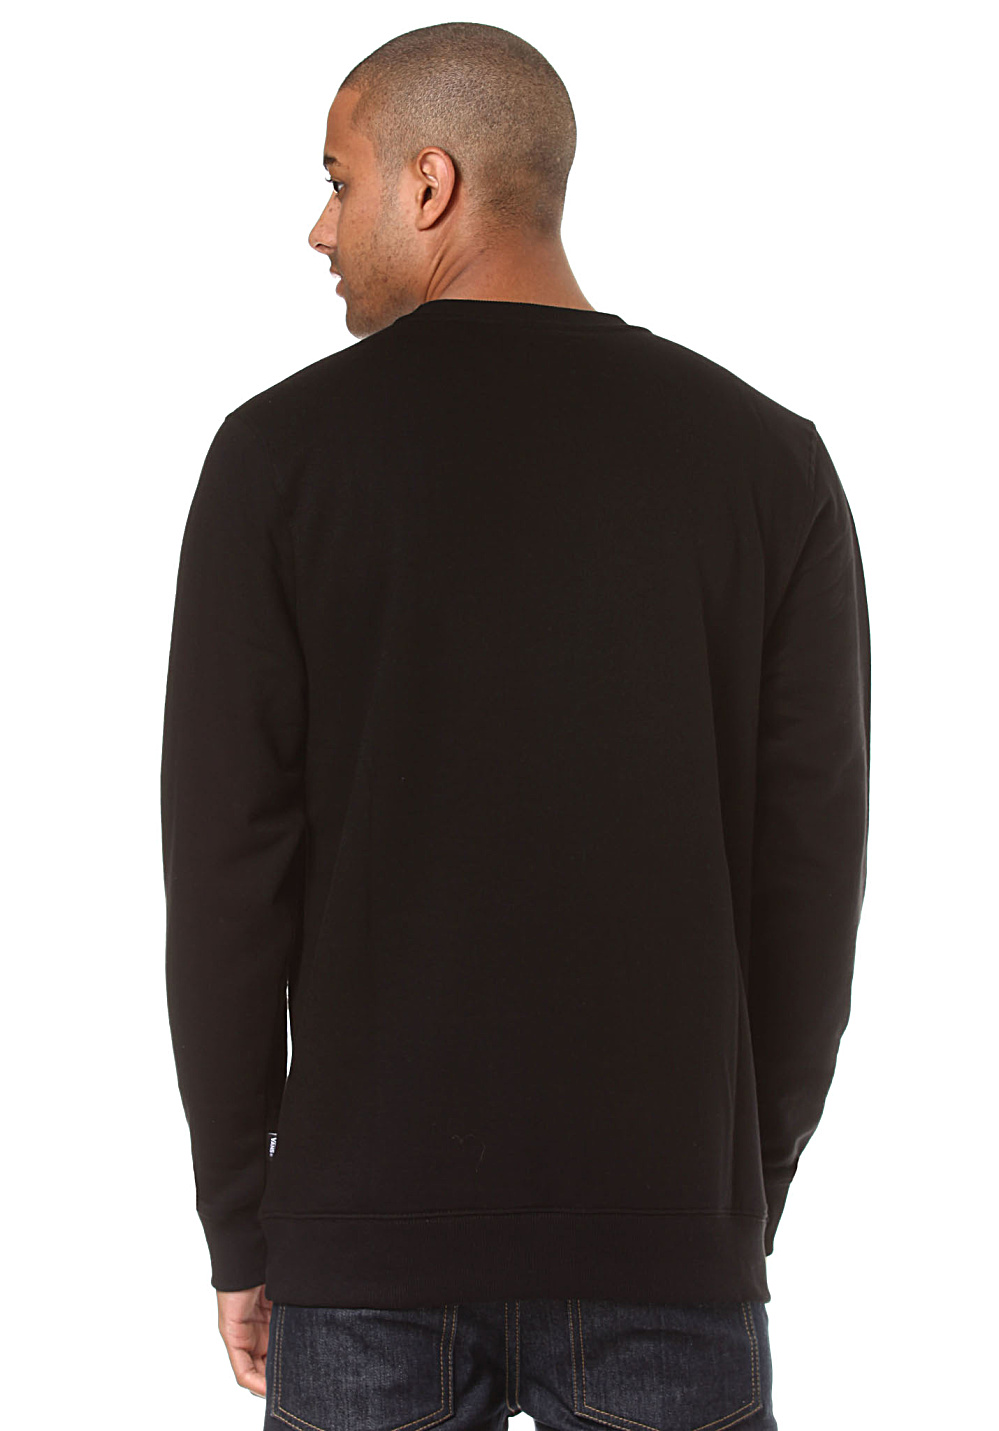 8f767af6e77acd ... Vans Classic Crew - Sweatshirt for Men - Black. Back to Overview. 1  2.  Previous